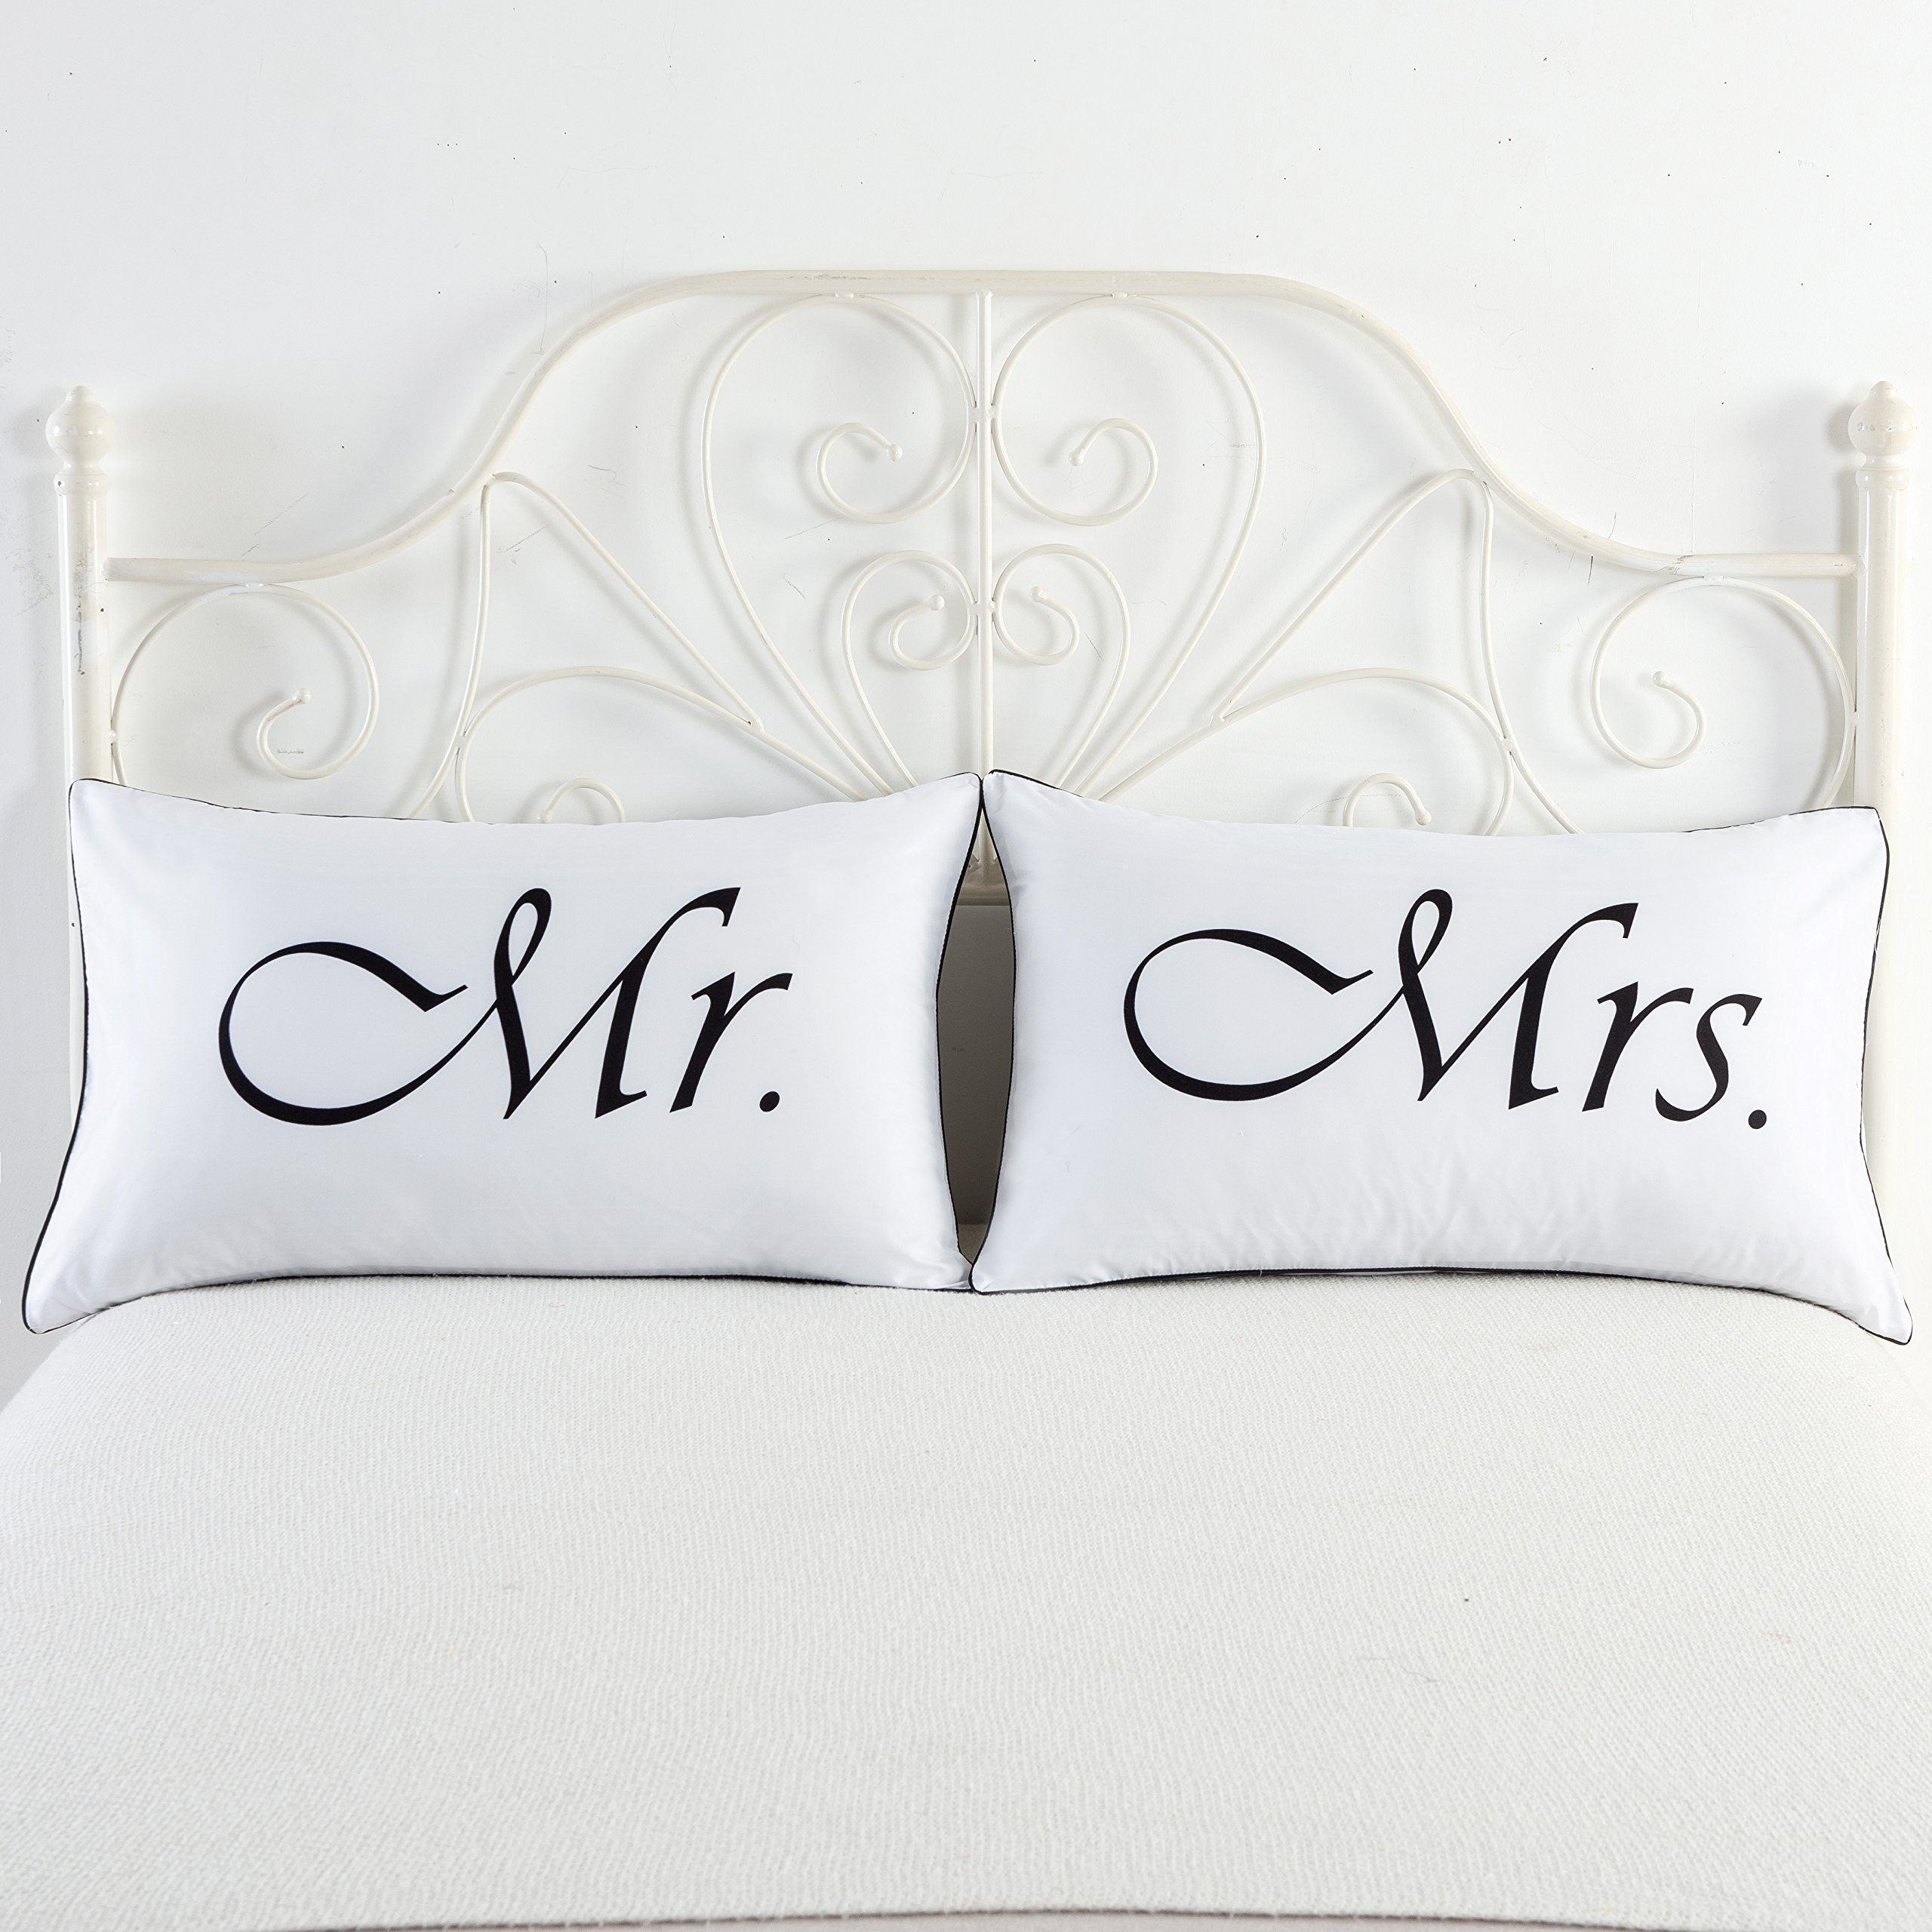 Cheap Christmas Gifts For Married Couples, find Christmas Gifts For ...